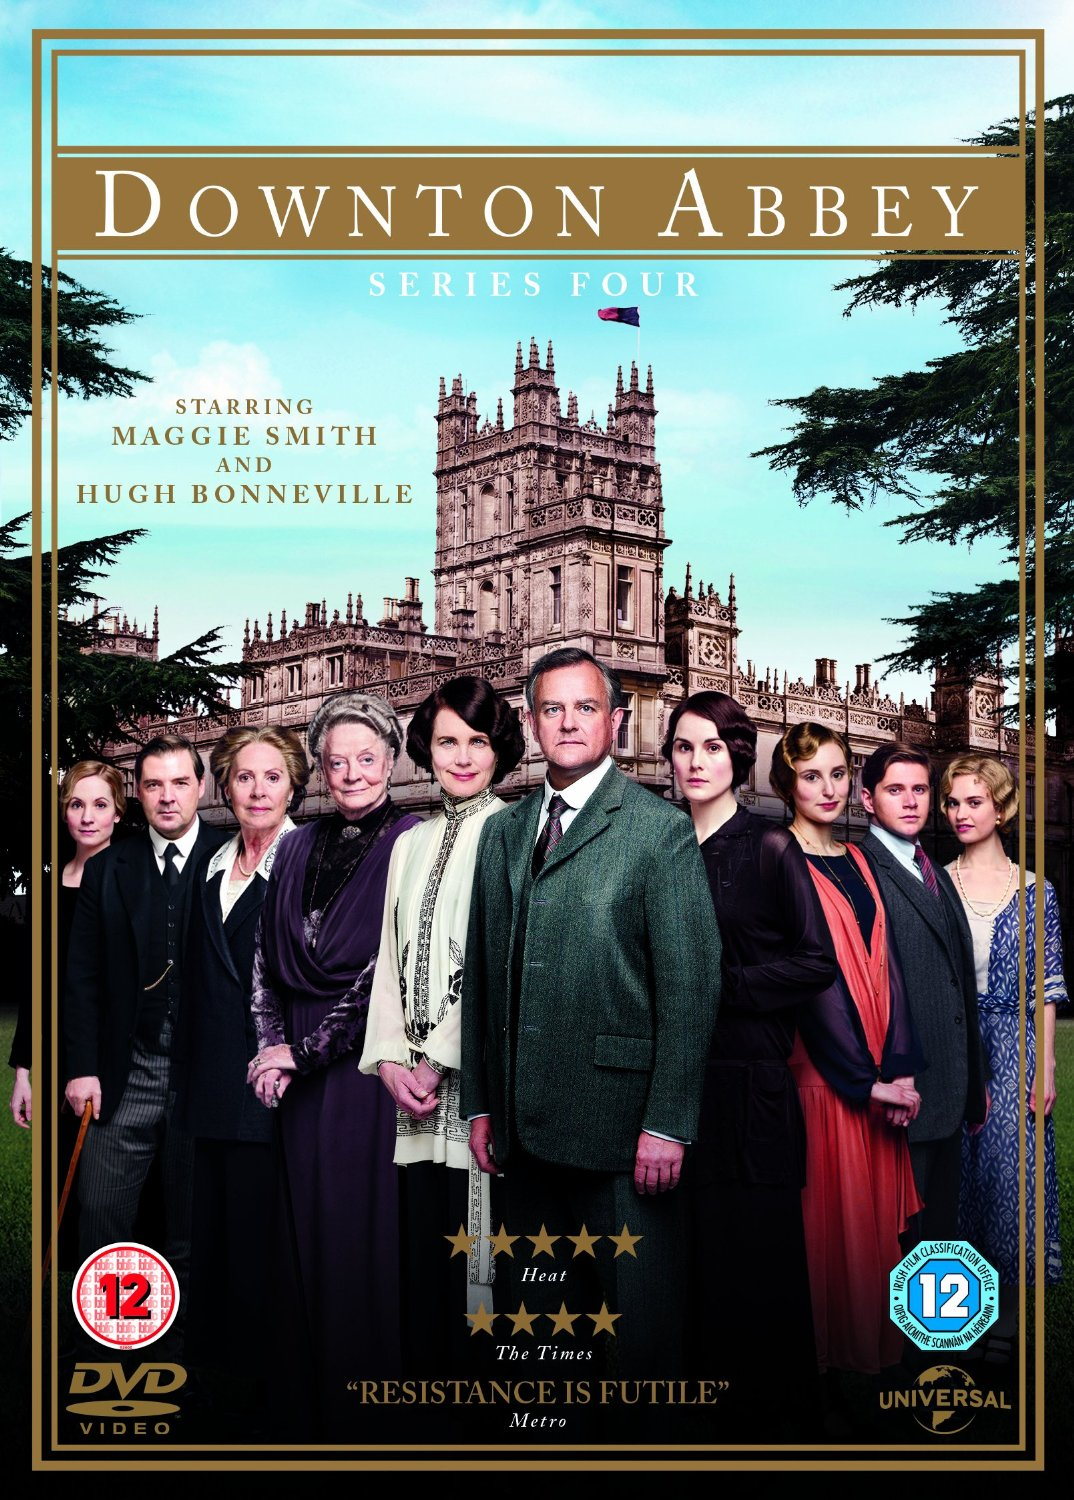 downton abbey season 6 torrent download kickass